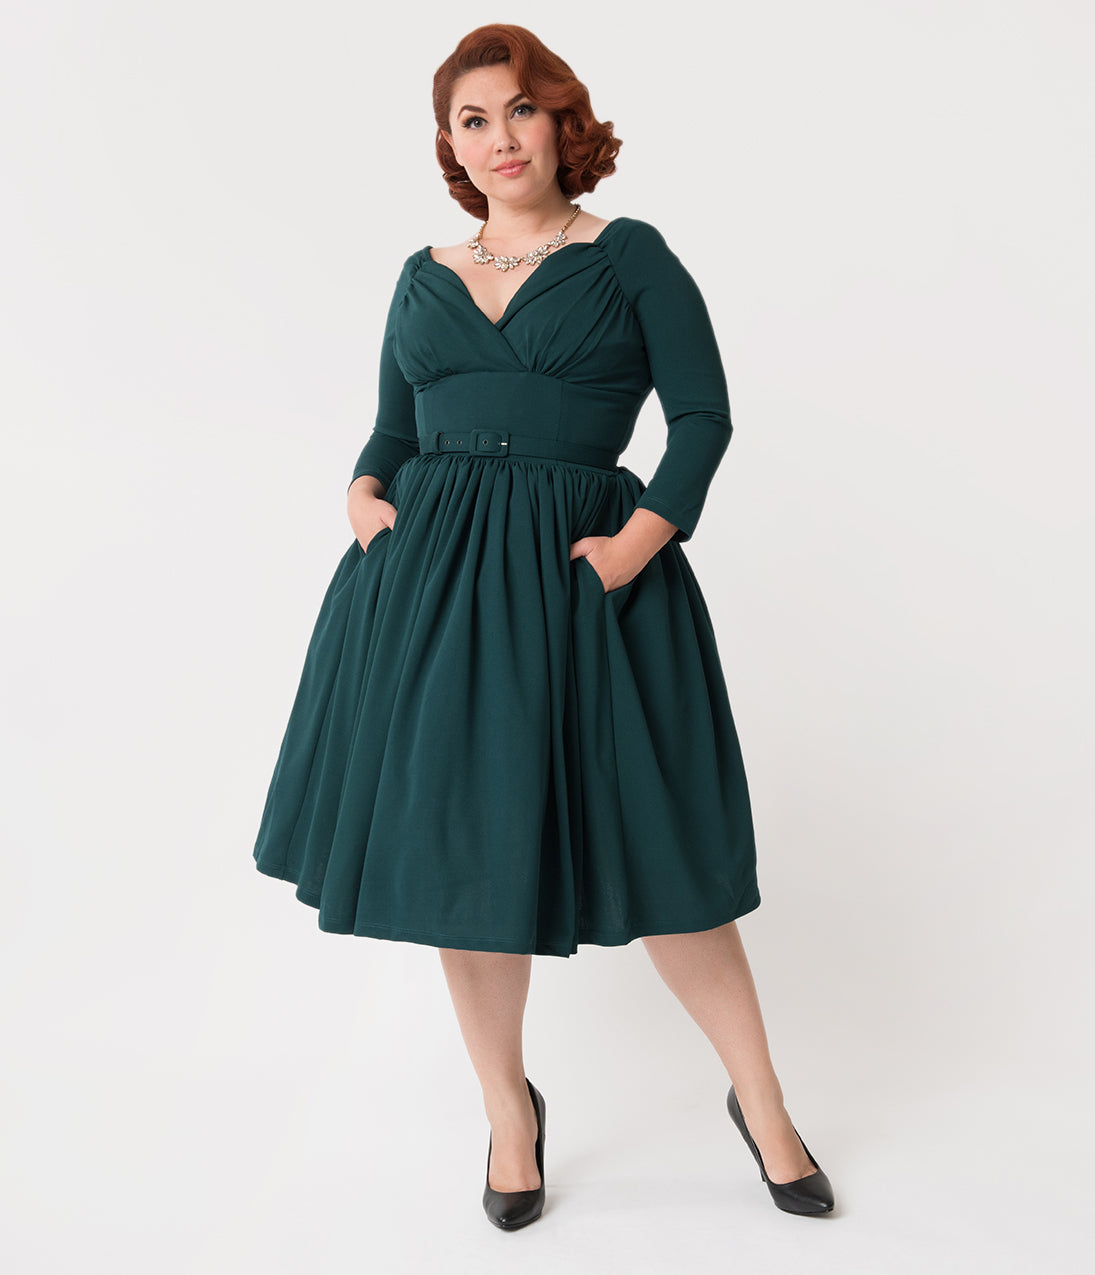 1950s Prom Dresses & Party Dresses Vixen By Micheline Pitt Plus Size Forest Green Sleeved Starlet Swing Dress $178.00 AT vintagedancer.com